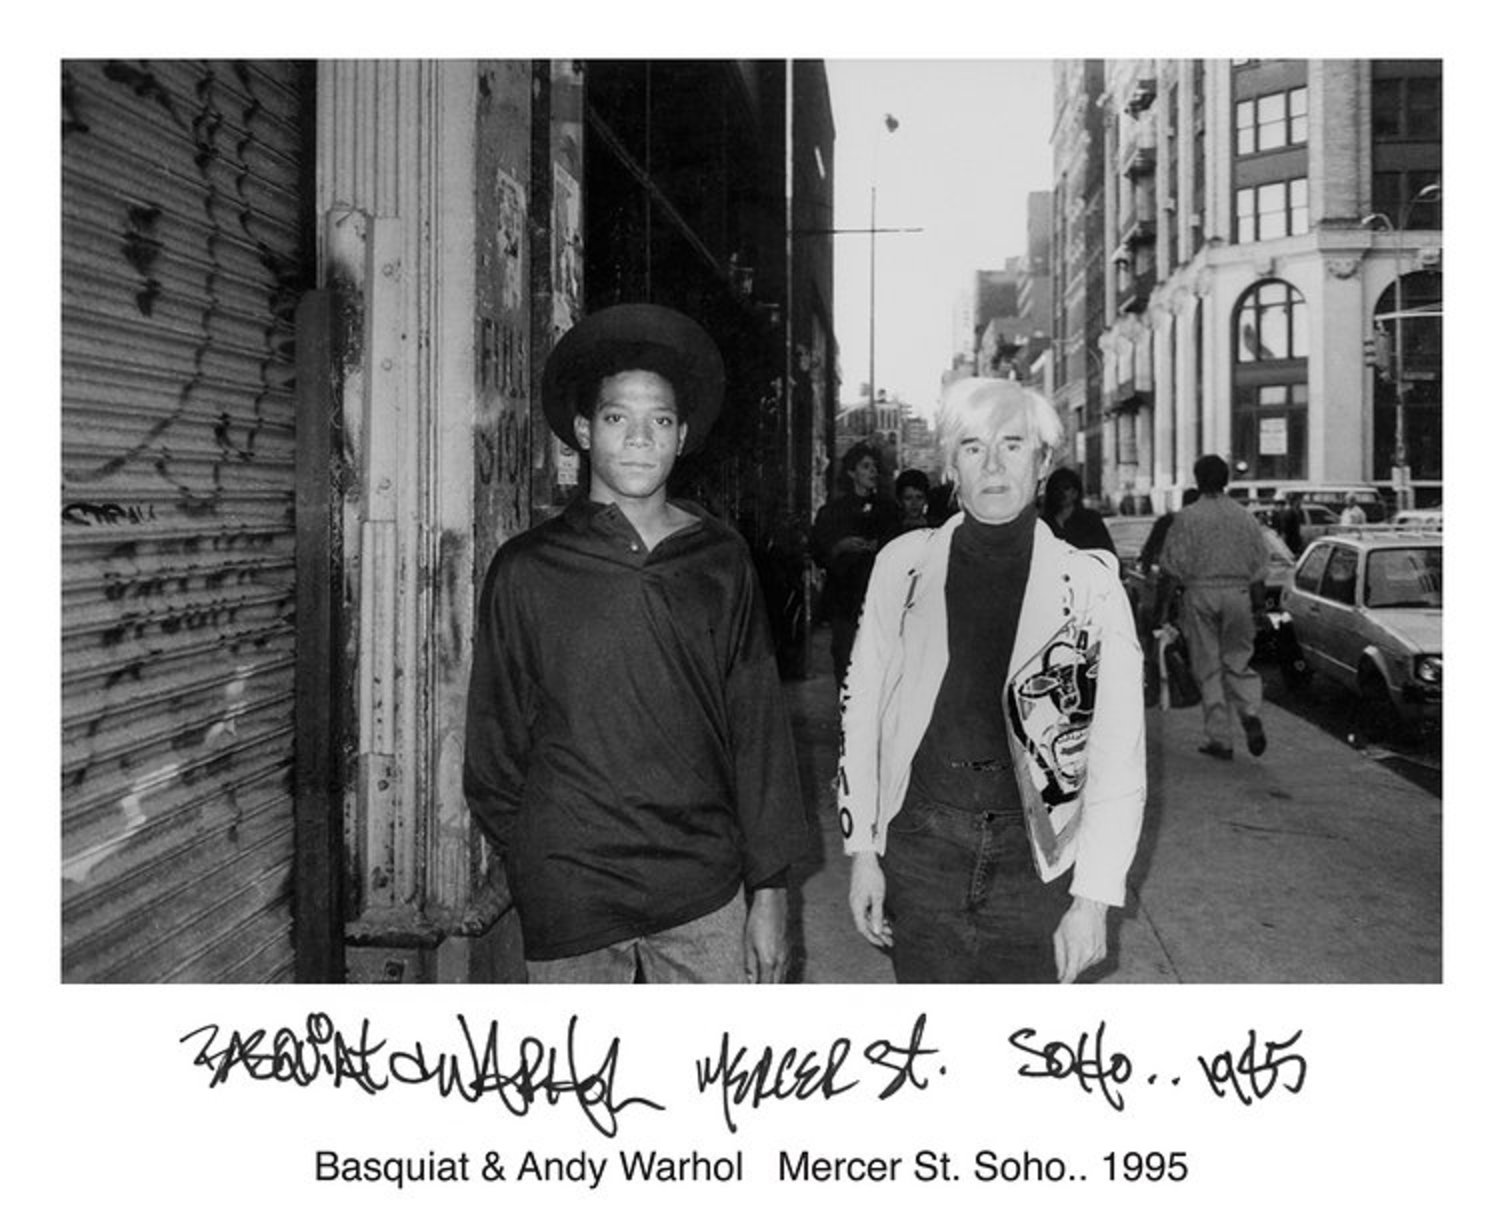 Basquiat & Andy Warhol Mercer St. Soho.. 1995